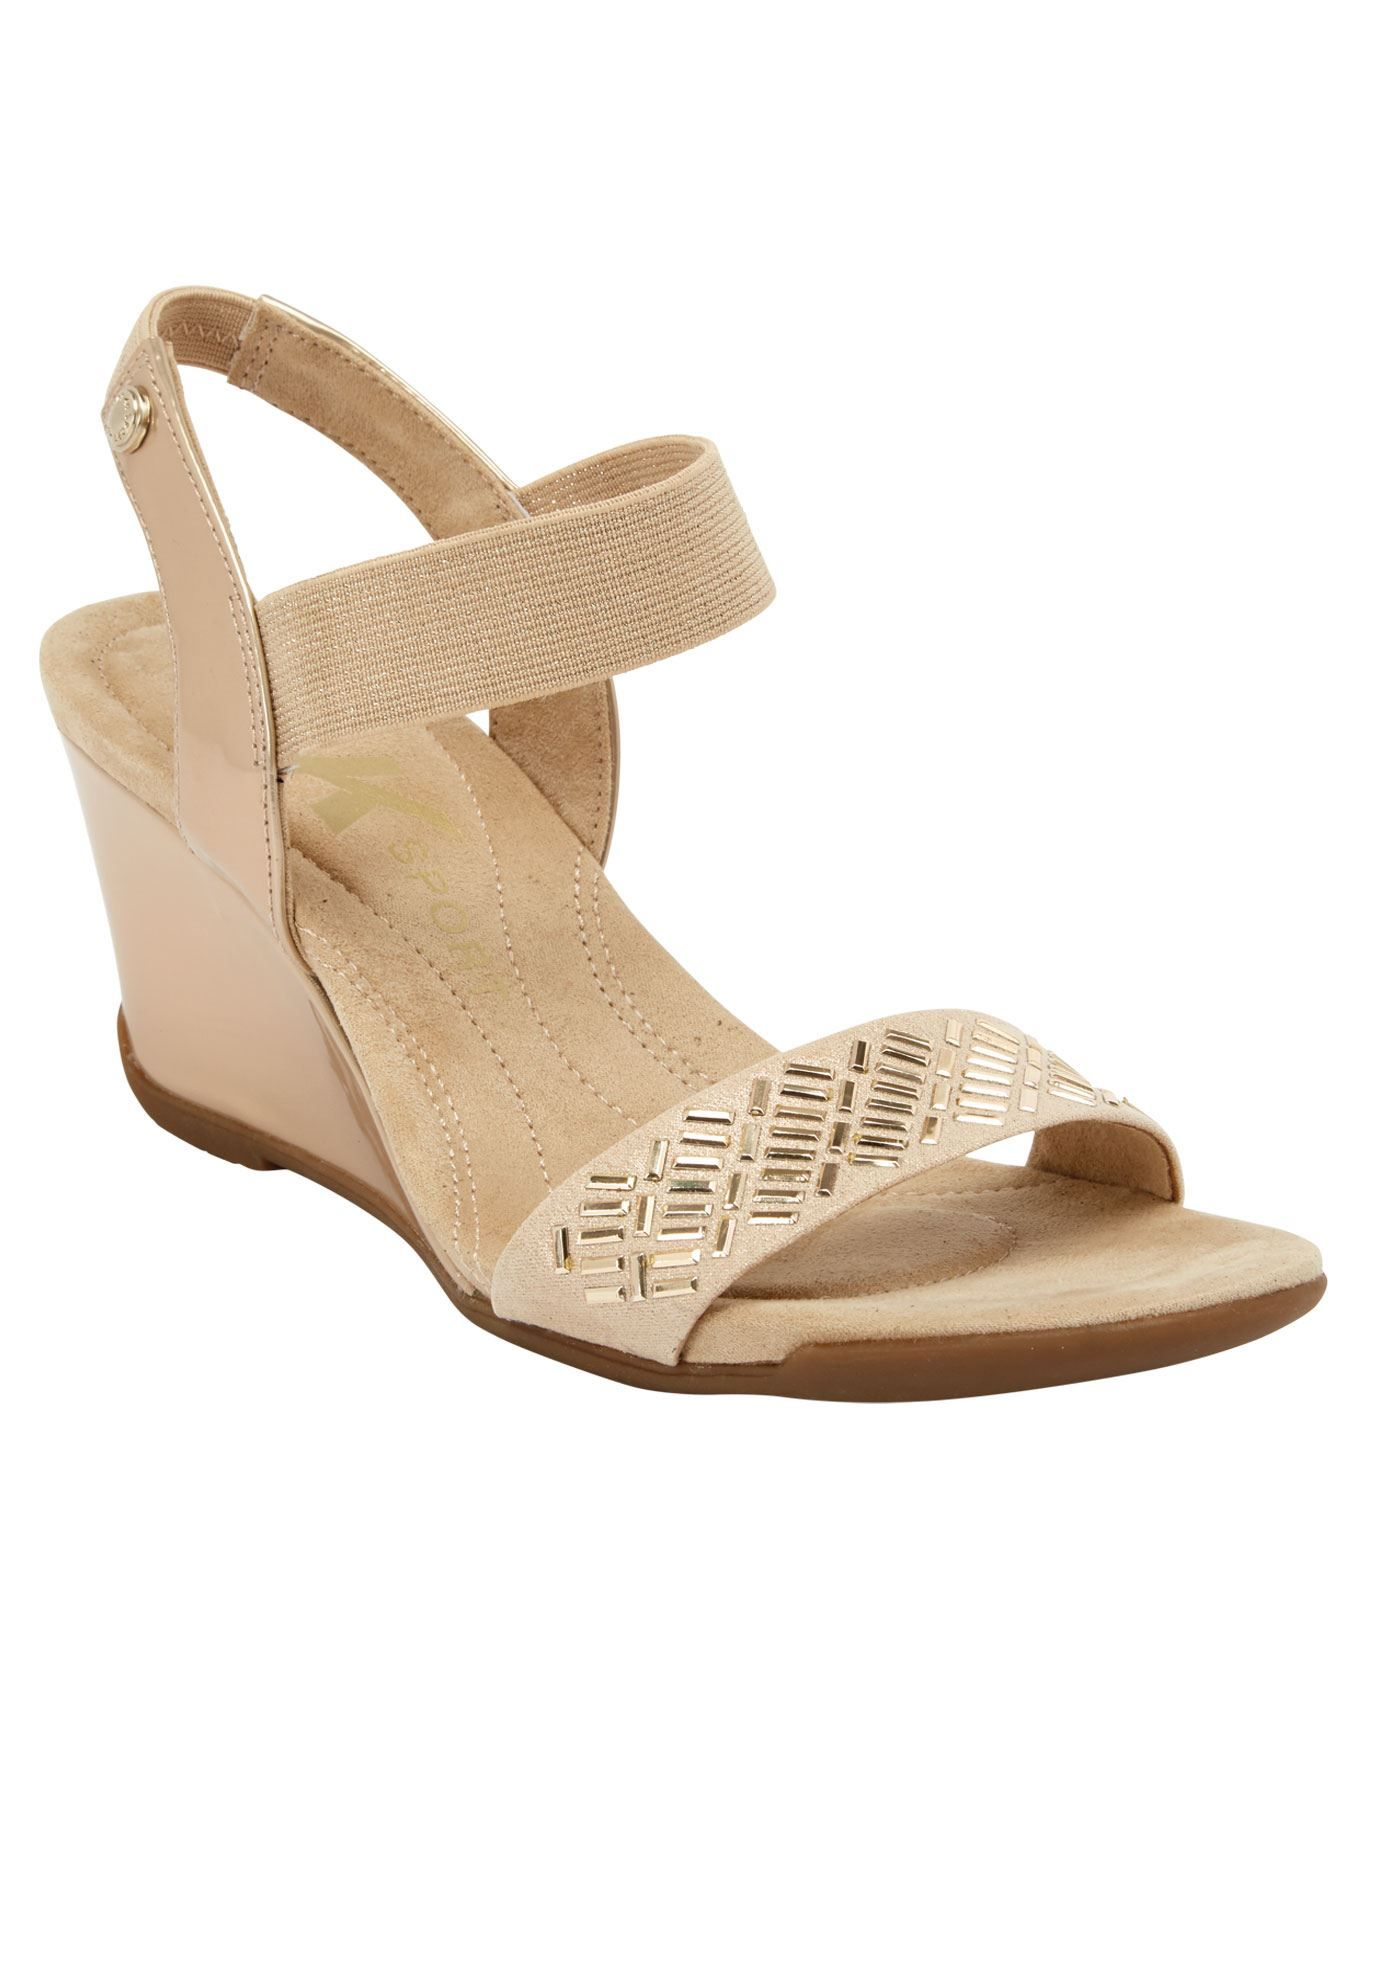 eabfd3ff04 Love Me Wedge Sandals by Anne Klein - Women's Plus Size Clothing ...